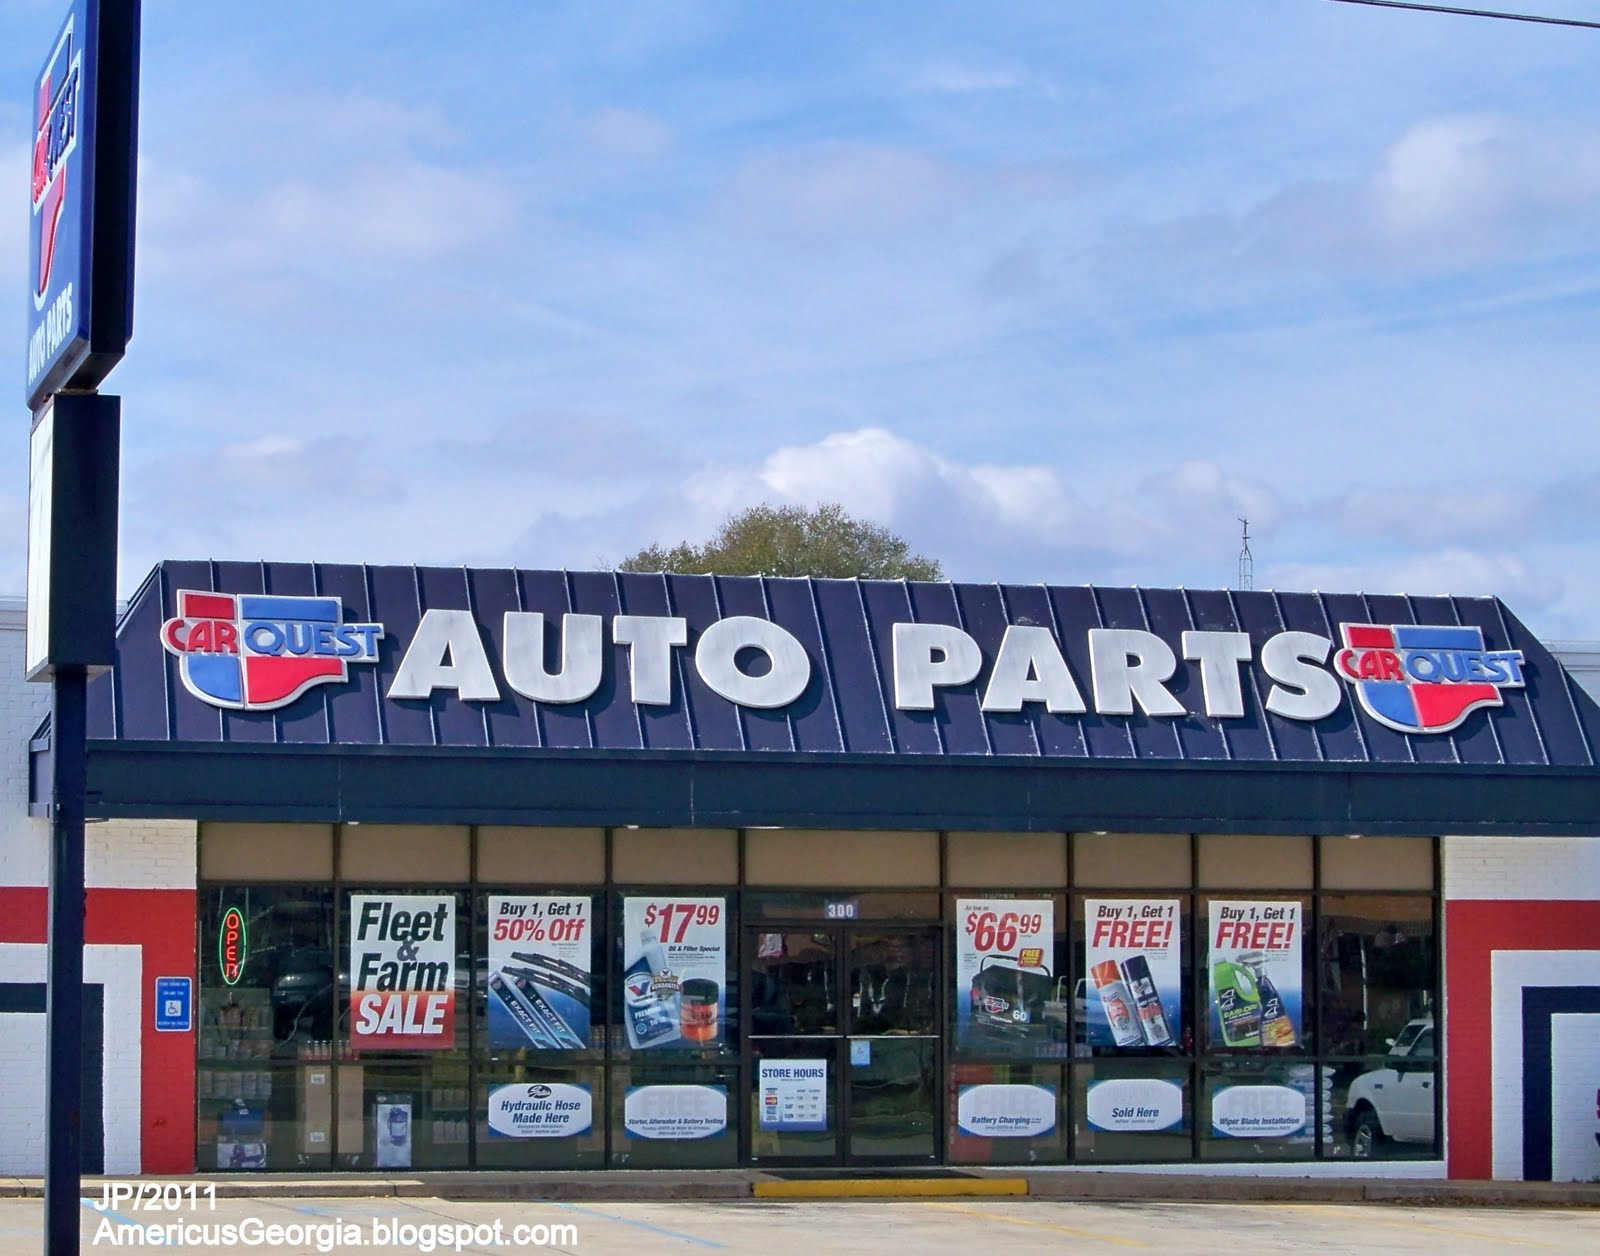 CAR+QUEST+AUTO+PARTS+AMERICUS+GEORGIA%2CCarQuest+Auto+Parts+Store ...